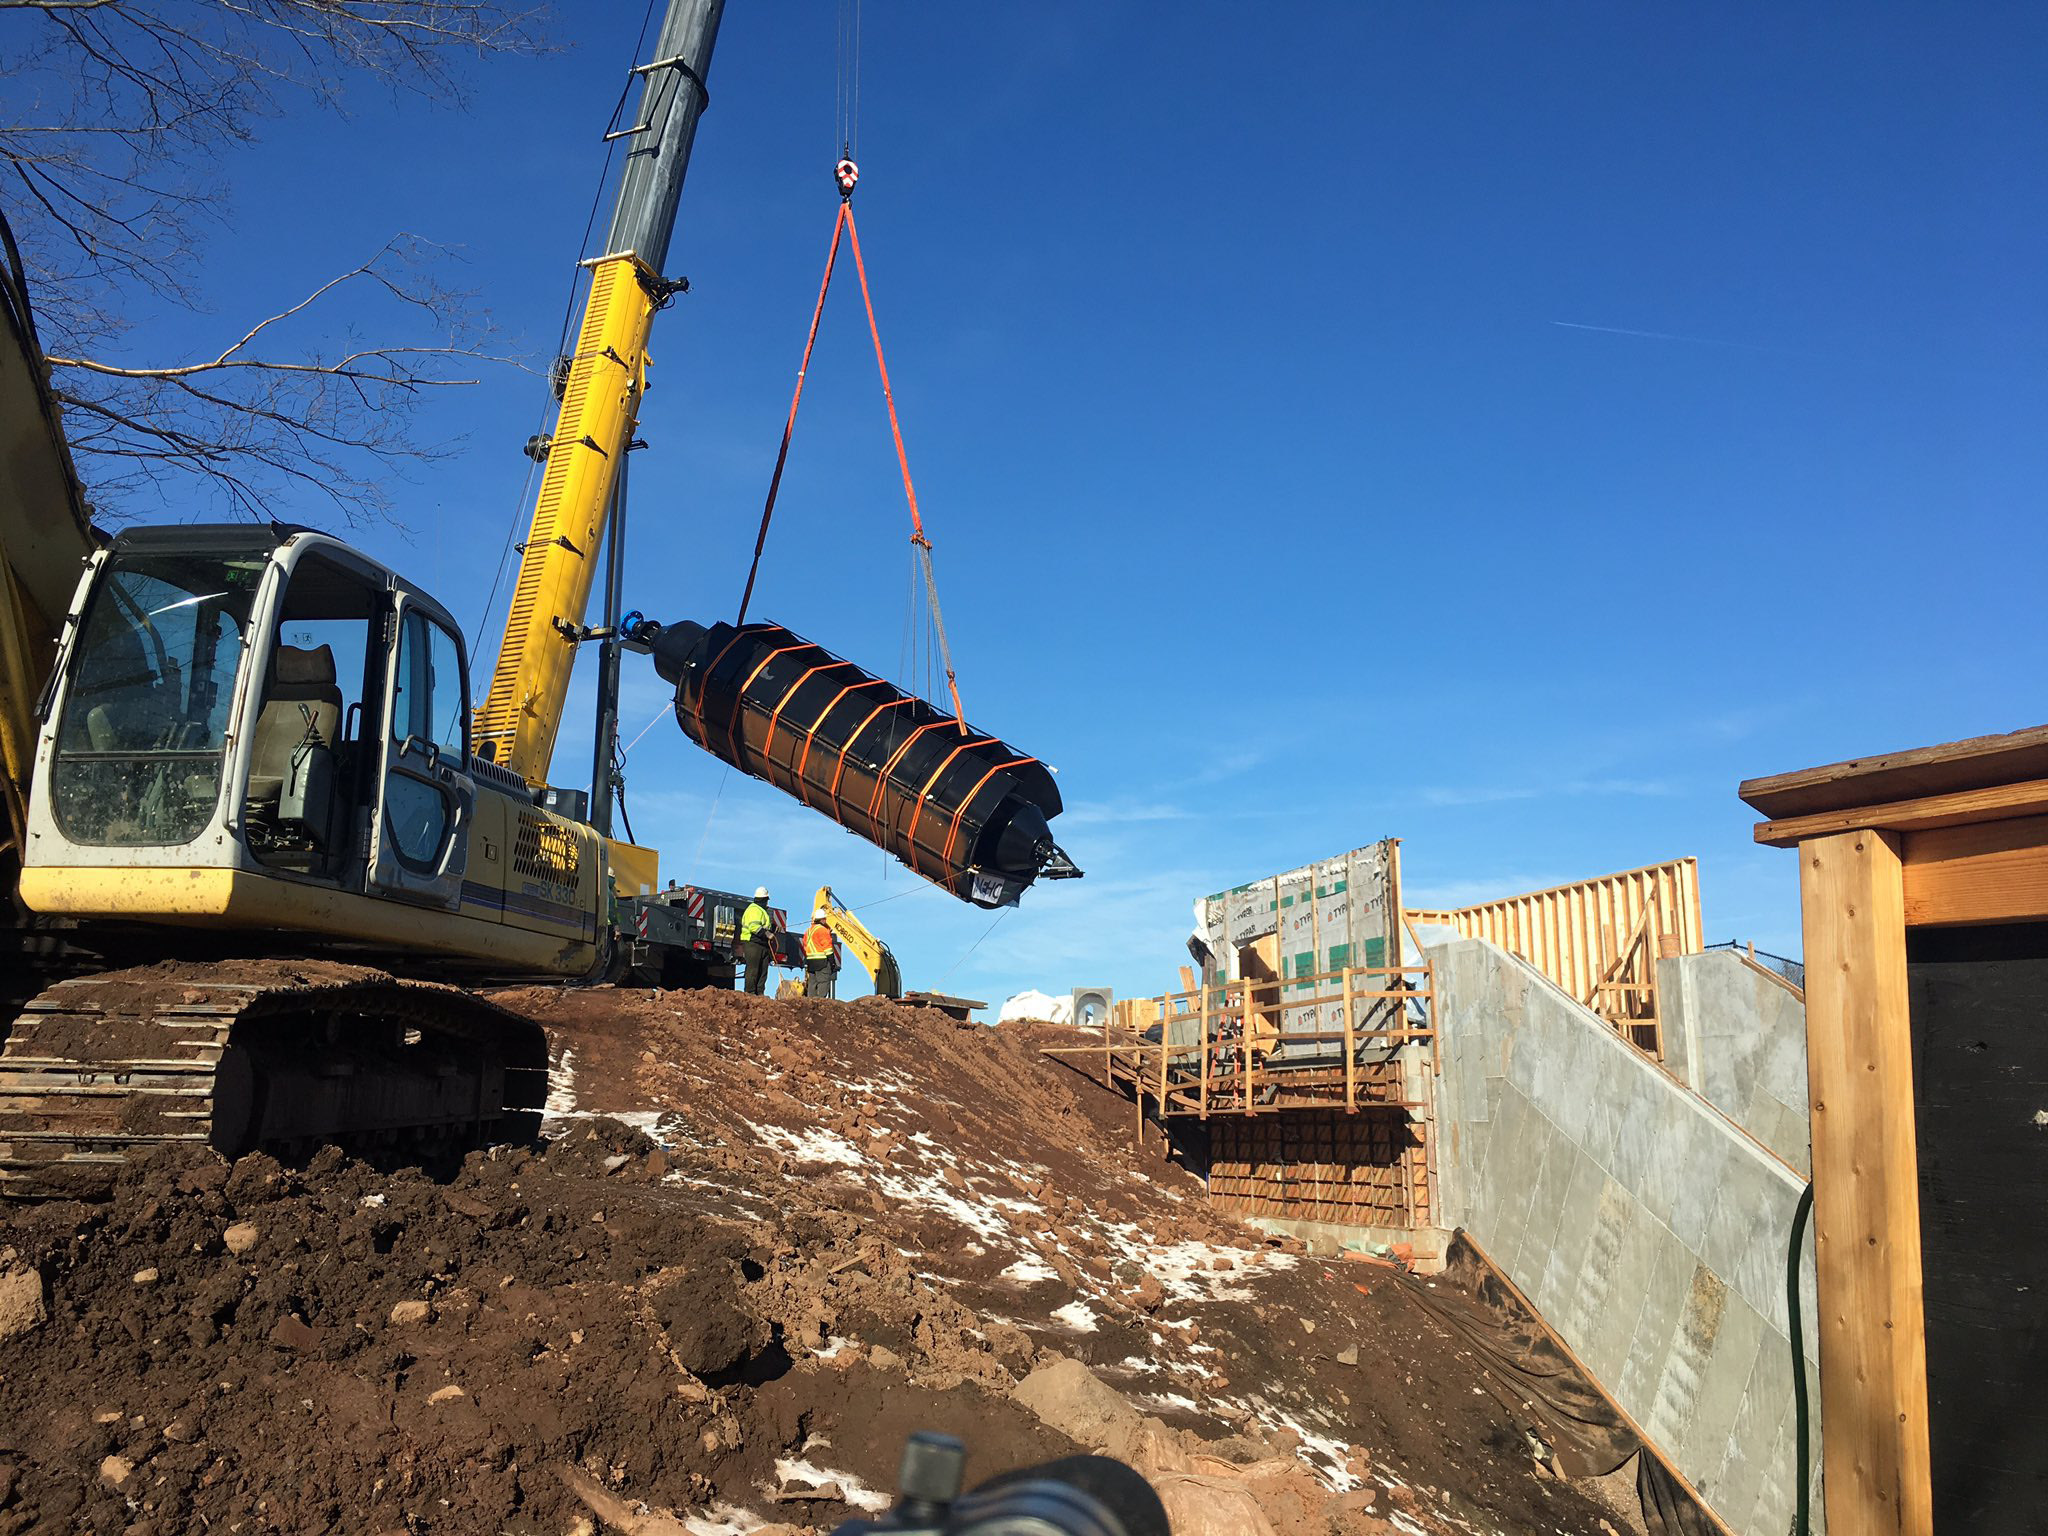 Crews installed the 20-ton, 35-foot-long Archimedes screw at Hanover Dam on Tuesday, Dec. 20. | Leigh Tauss, Record-Journal